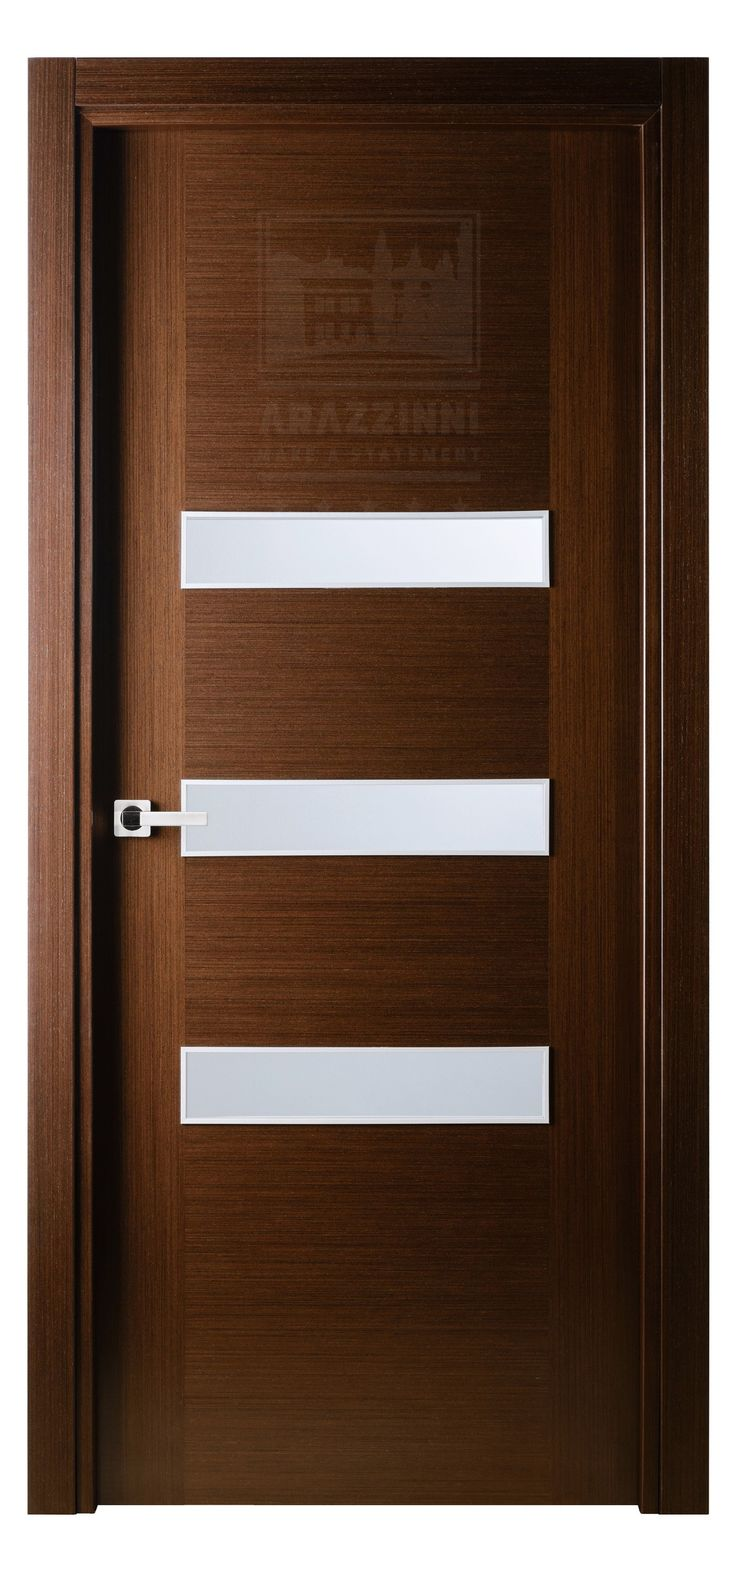 51 best exotic wood veneer doors images on pinterest wood veneer antha gele interior door in italian wenge finish eventelaan Gallery